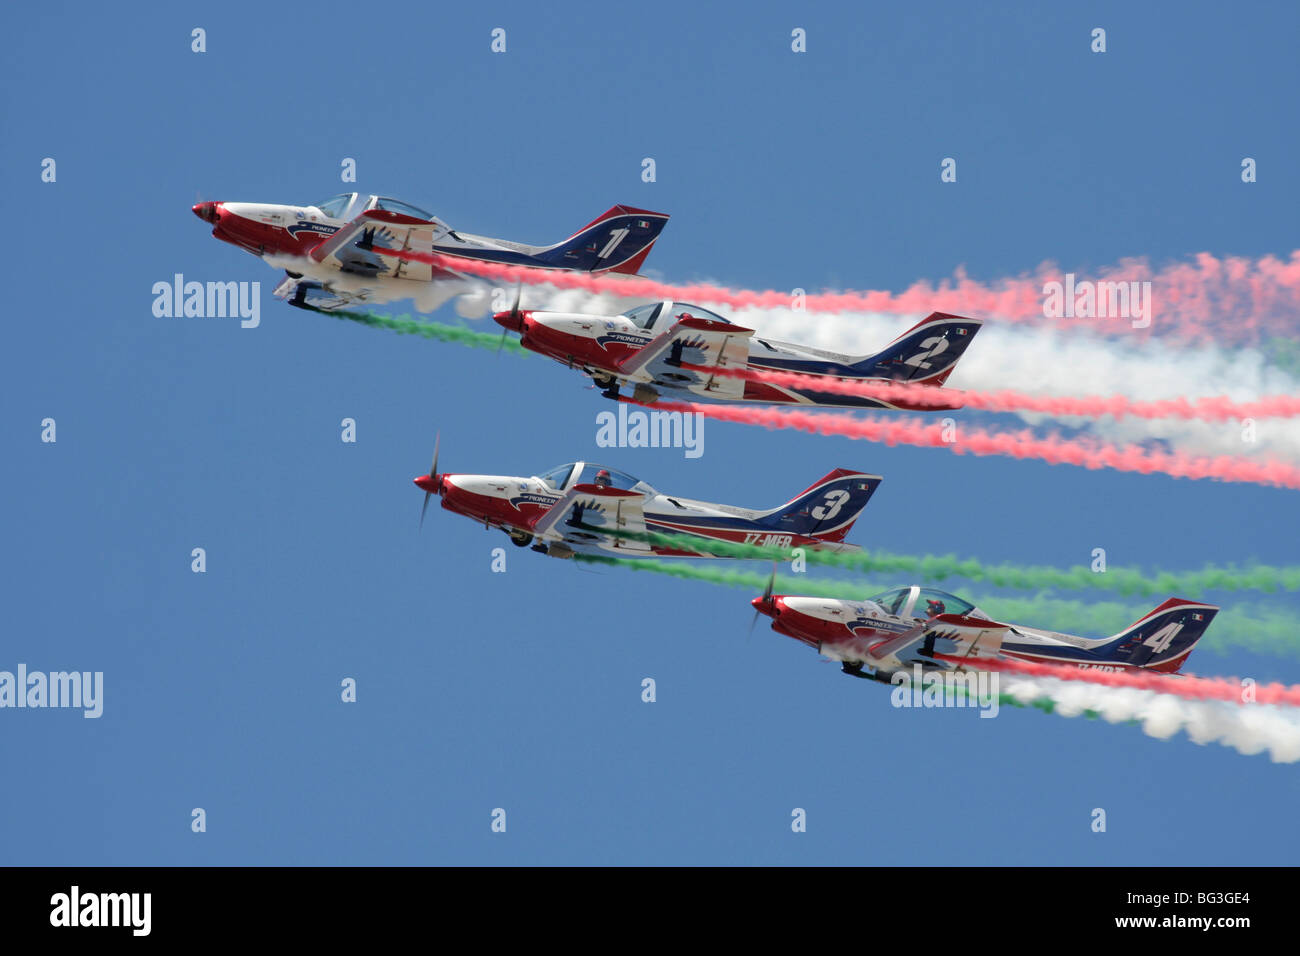 The Pioneer Team flying their Alpi Aviation Pioneer 300 Hawks in close formation - Stock Image